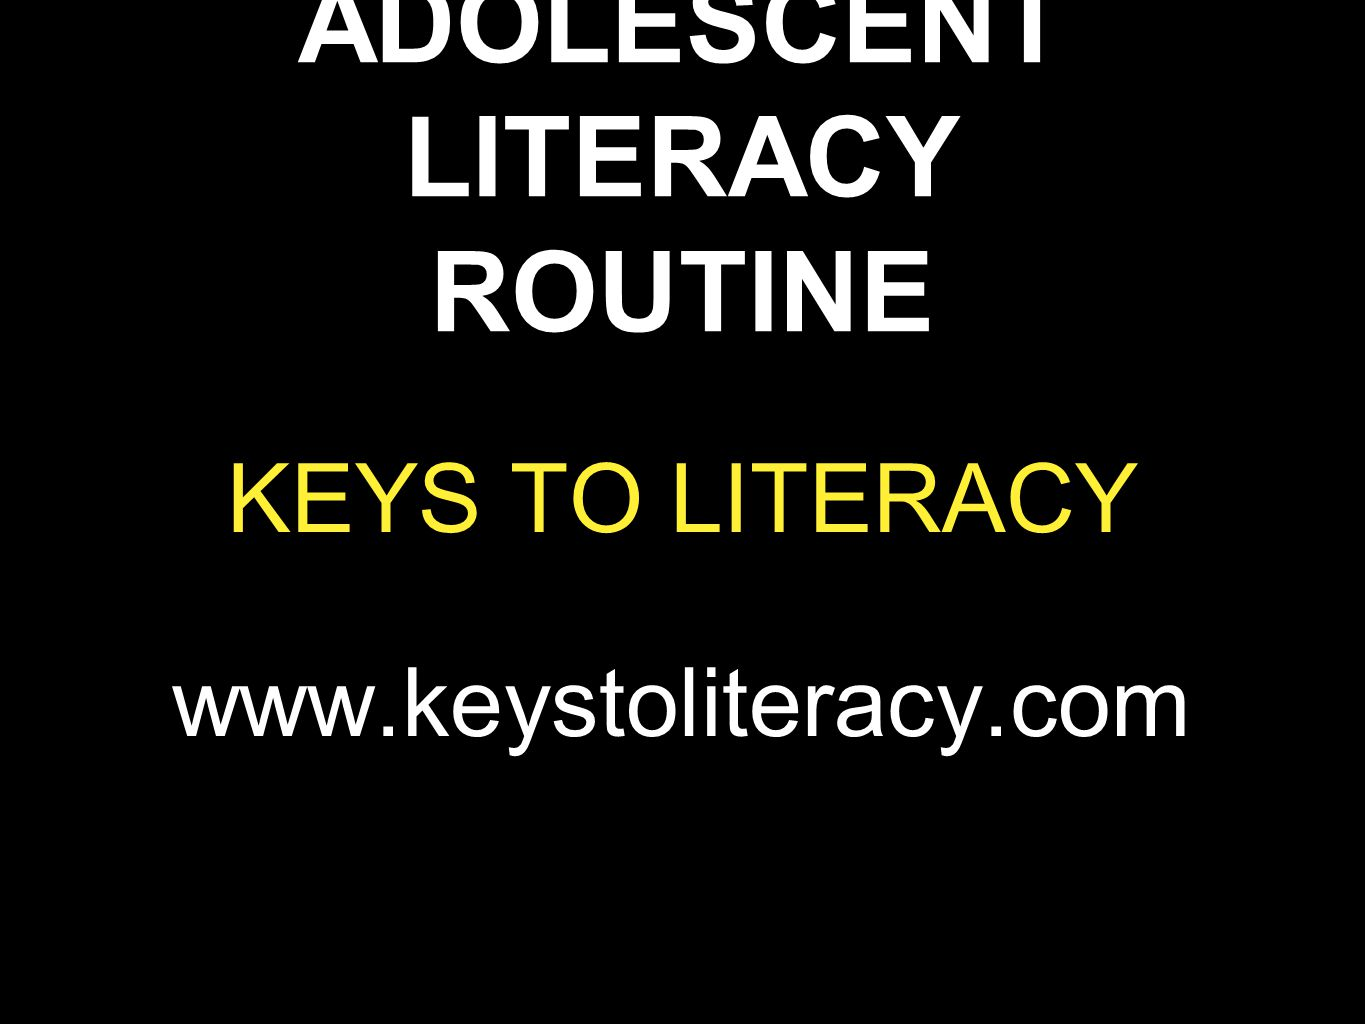 ADOLESCENT LITERACY ROUTINE KEYS TO LITERACY www.keystoliteracy.com